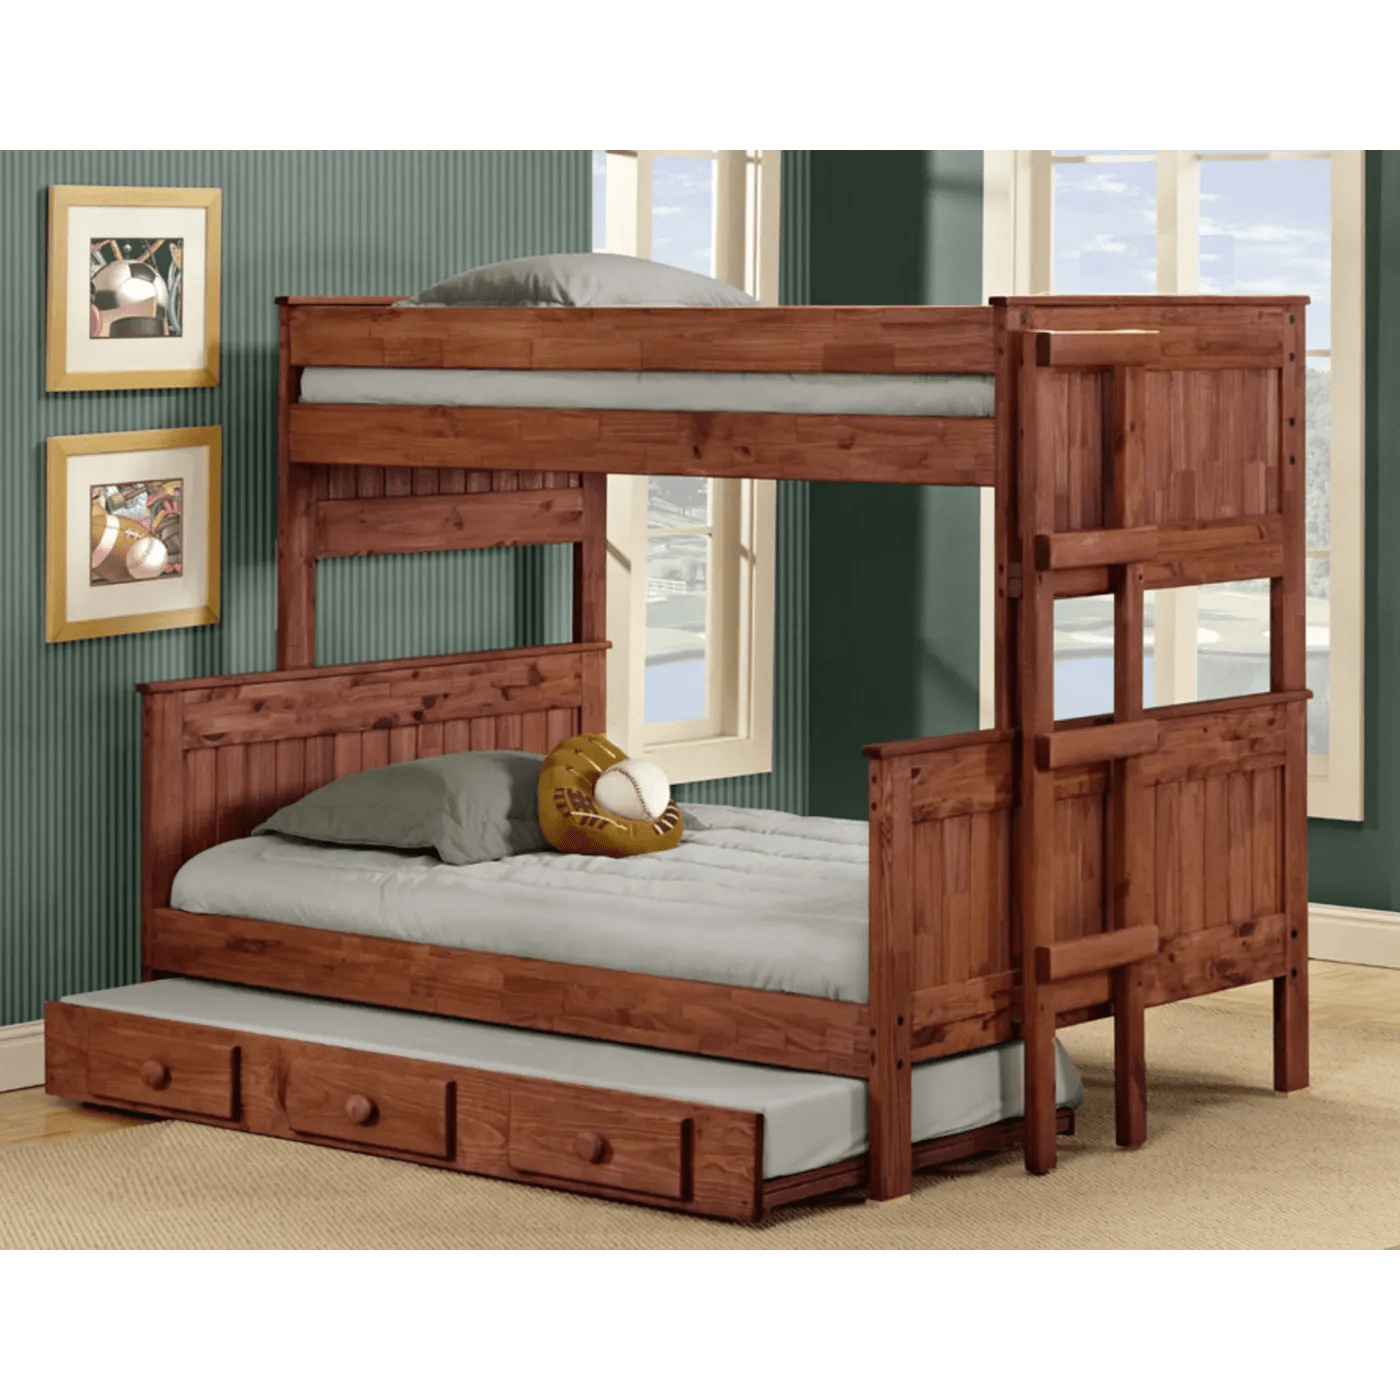 Stackable Twin Beds Chelsea Home 31mah4019